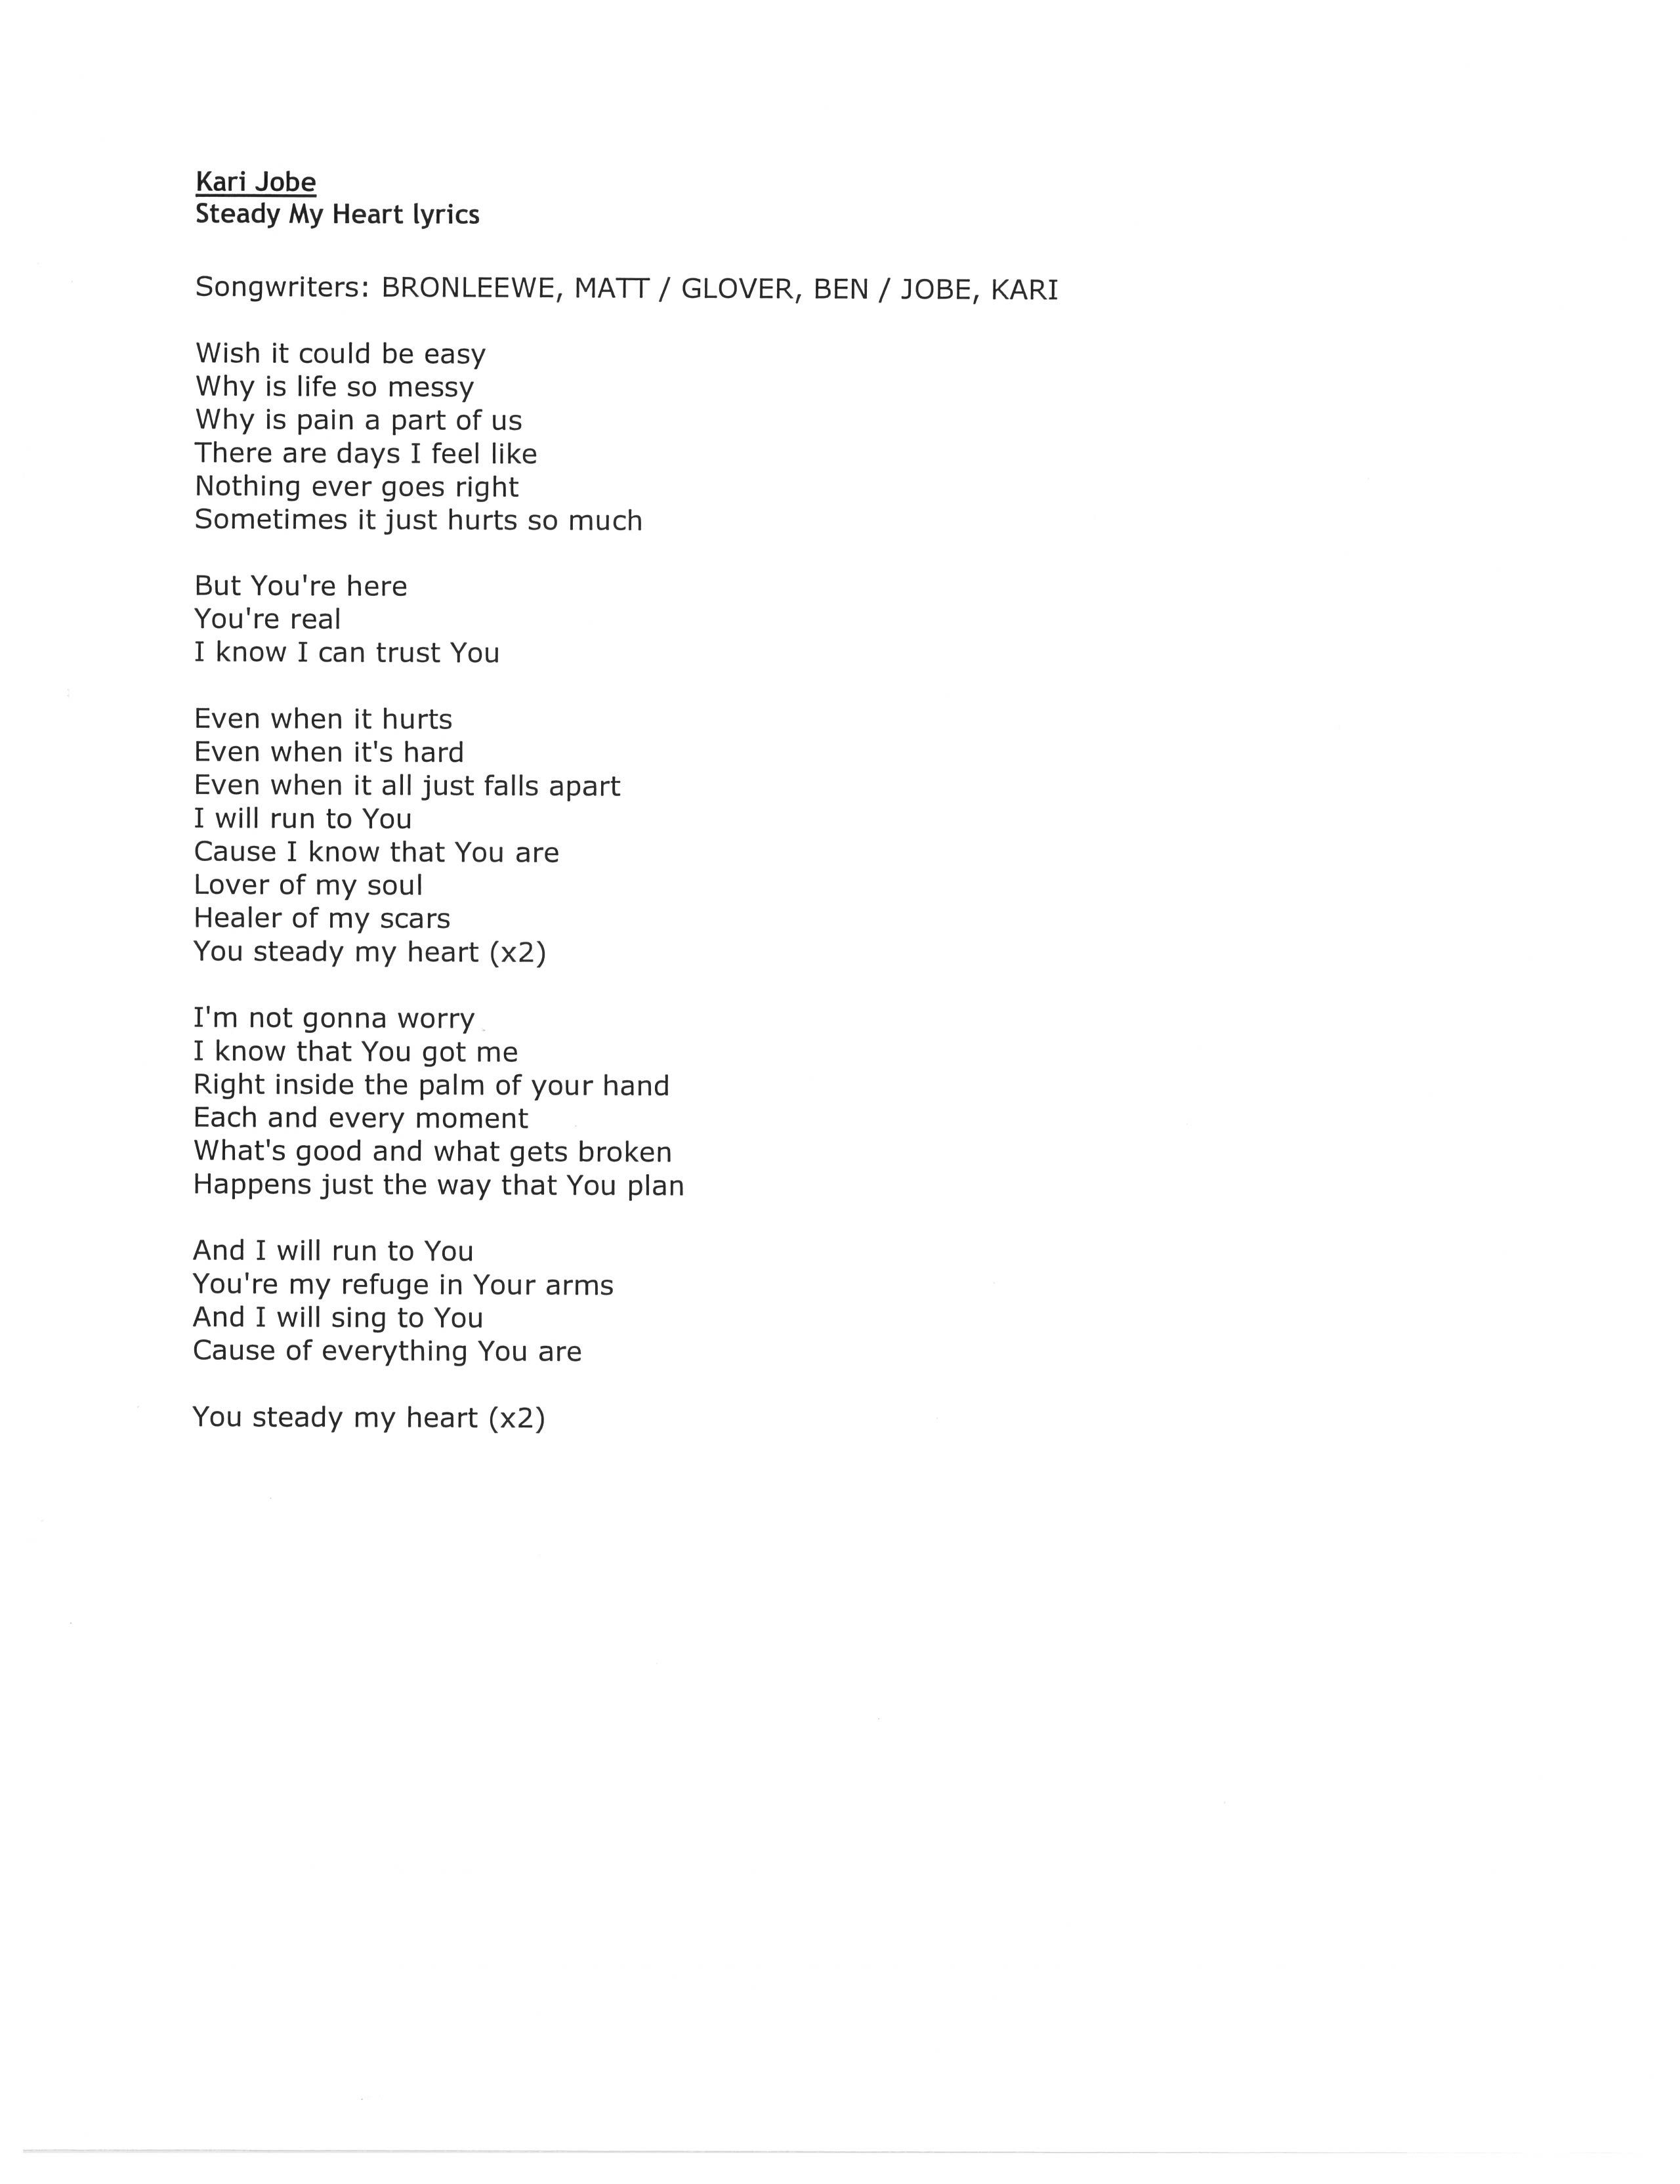 KariJobe Steady My Heart Lyrics I just love this song thought you would to.  Praying He will steady hearts <3